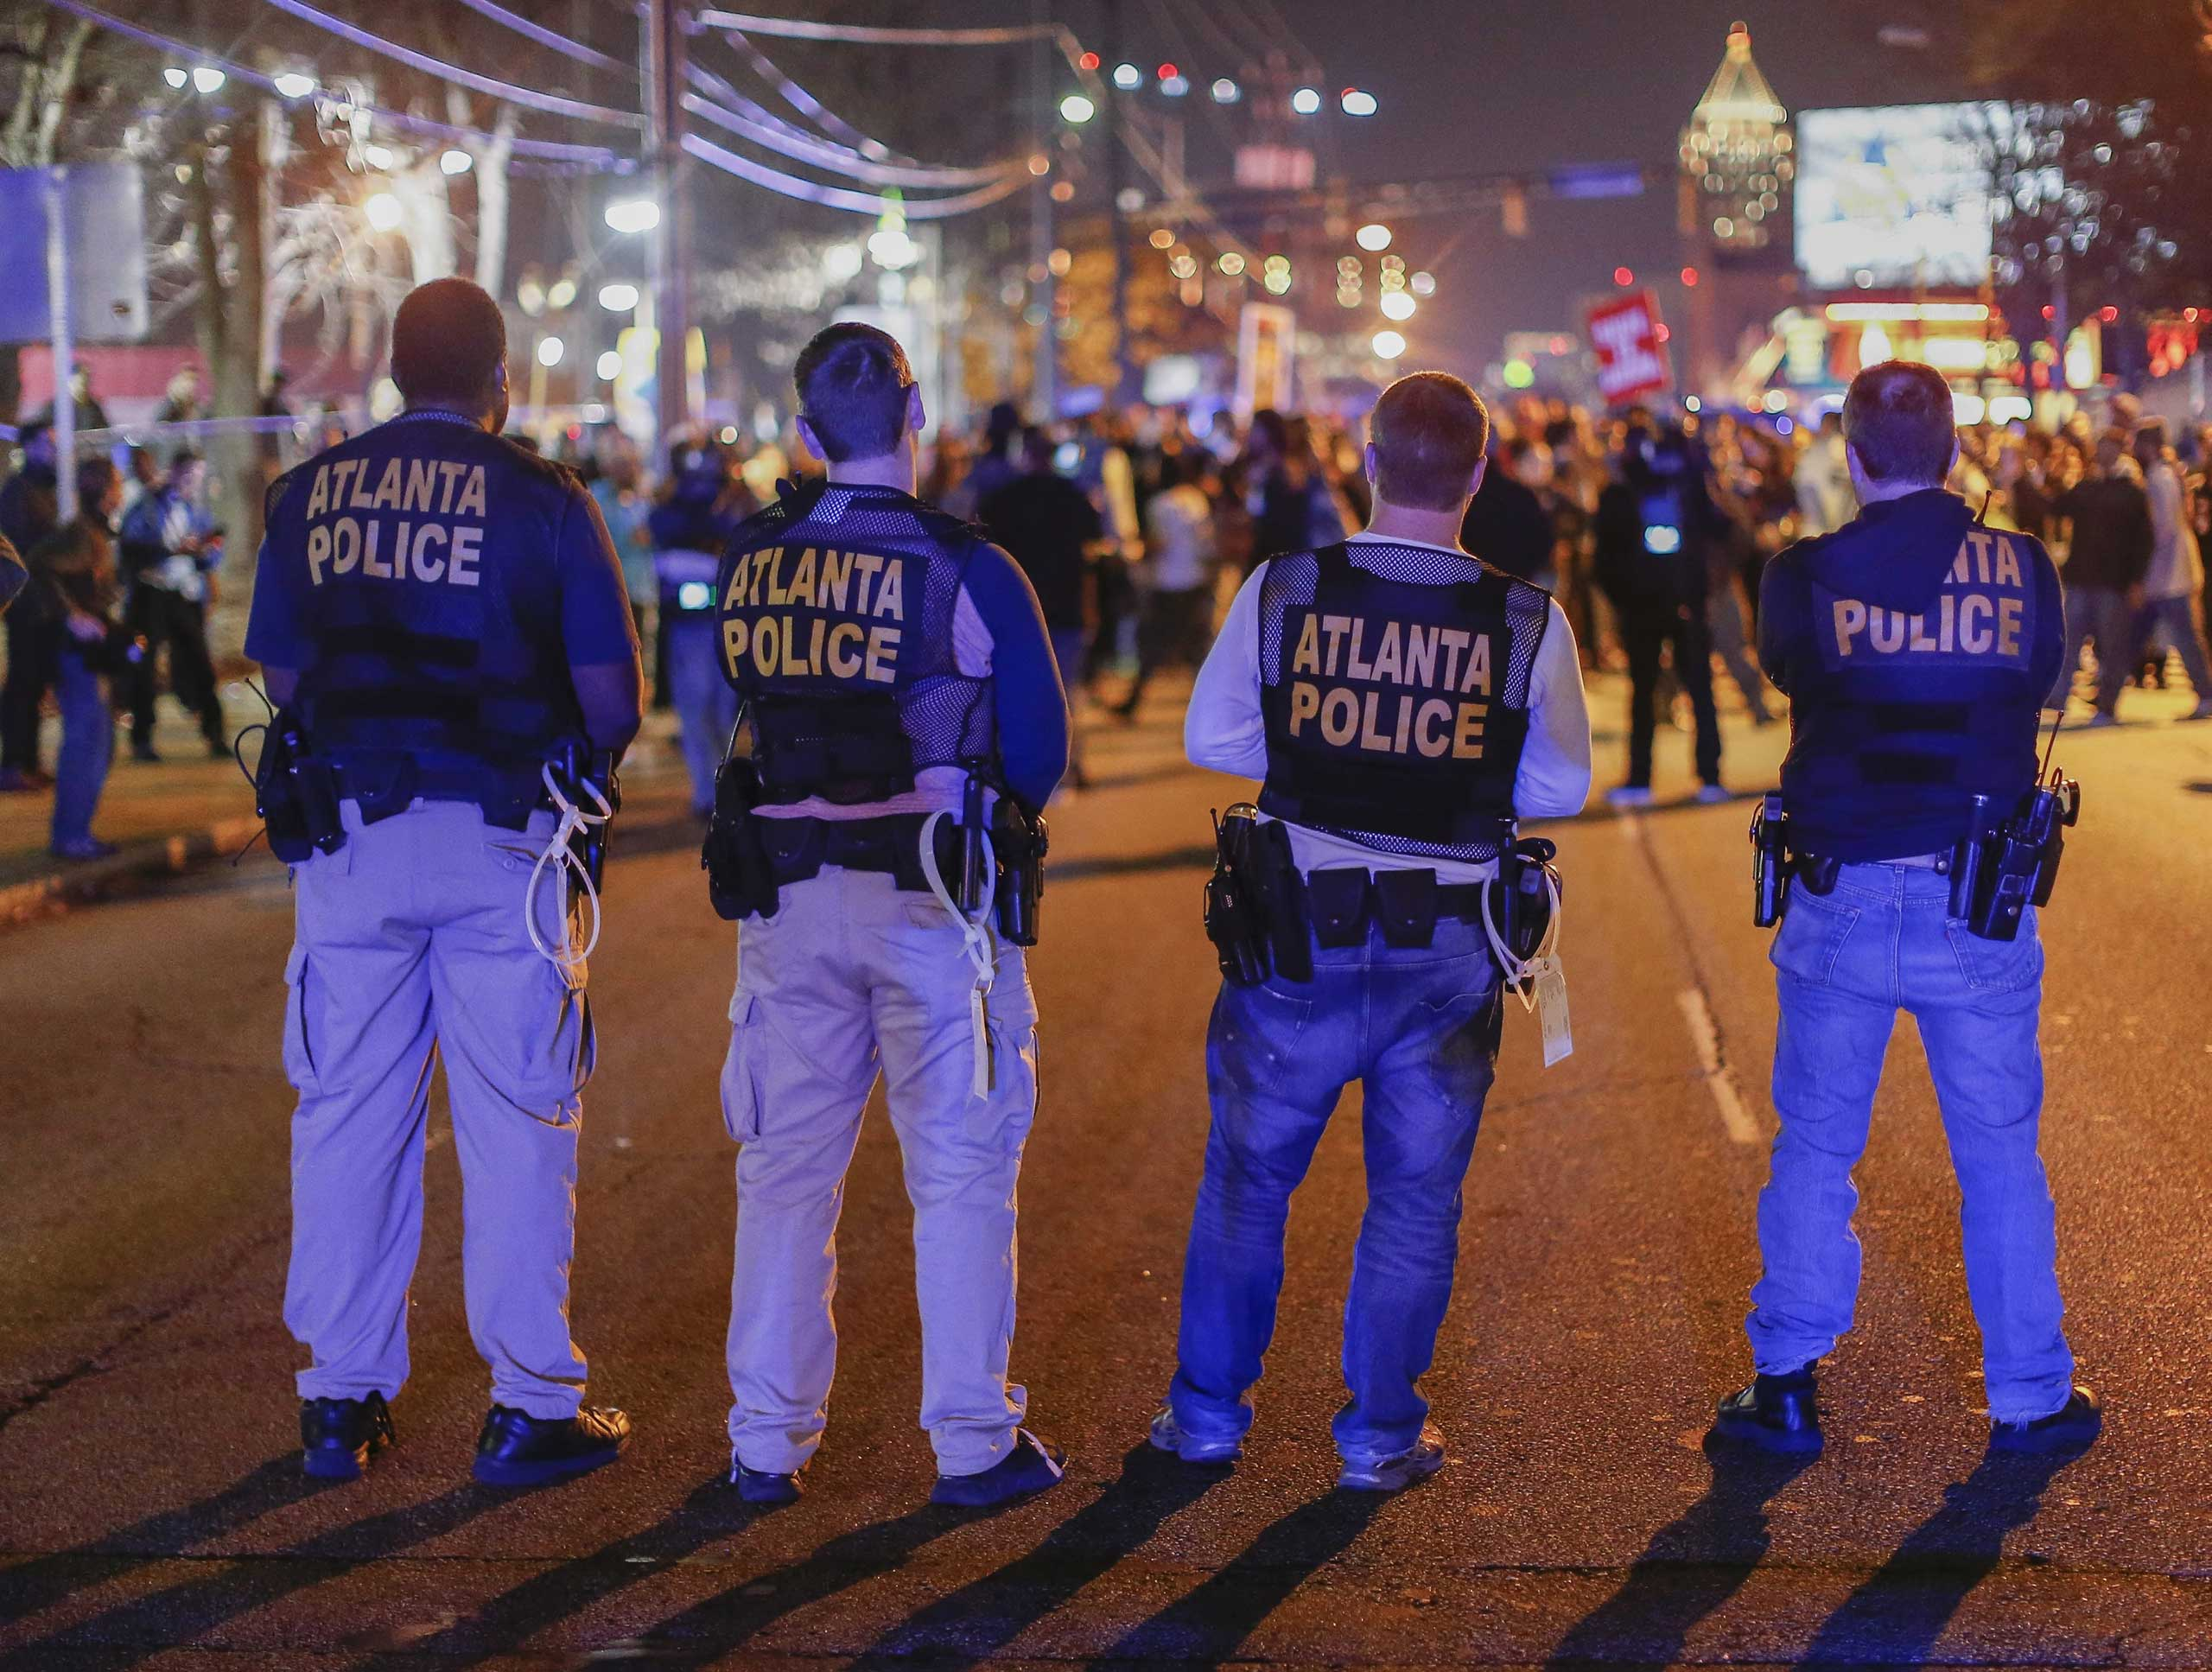 Atlanta Police face off with protesters blocking Spring Street in Atlanta on Dec. 3, 2014.